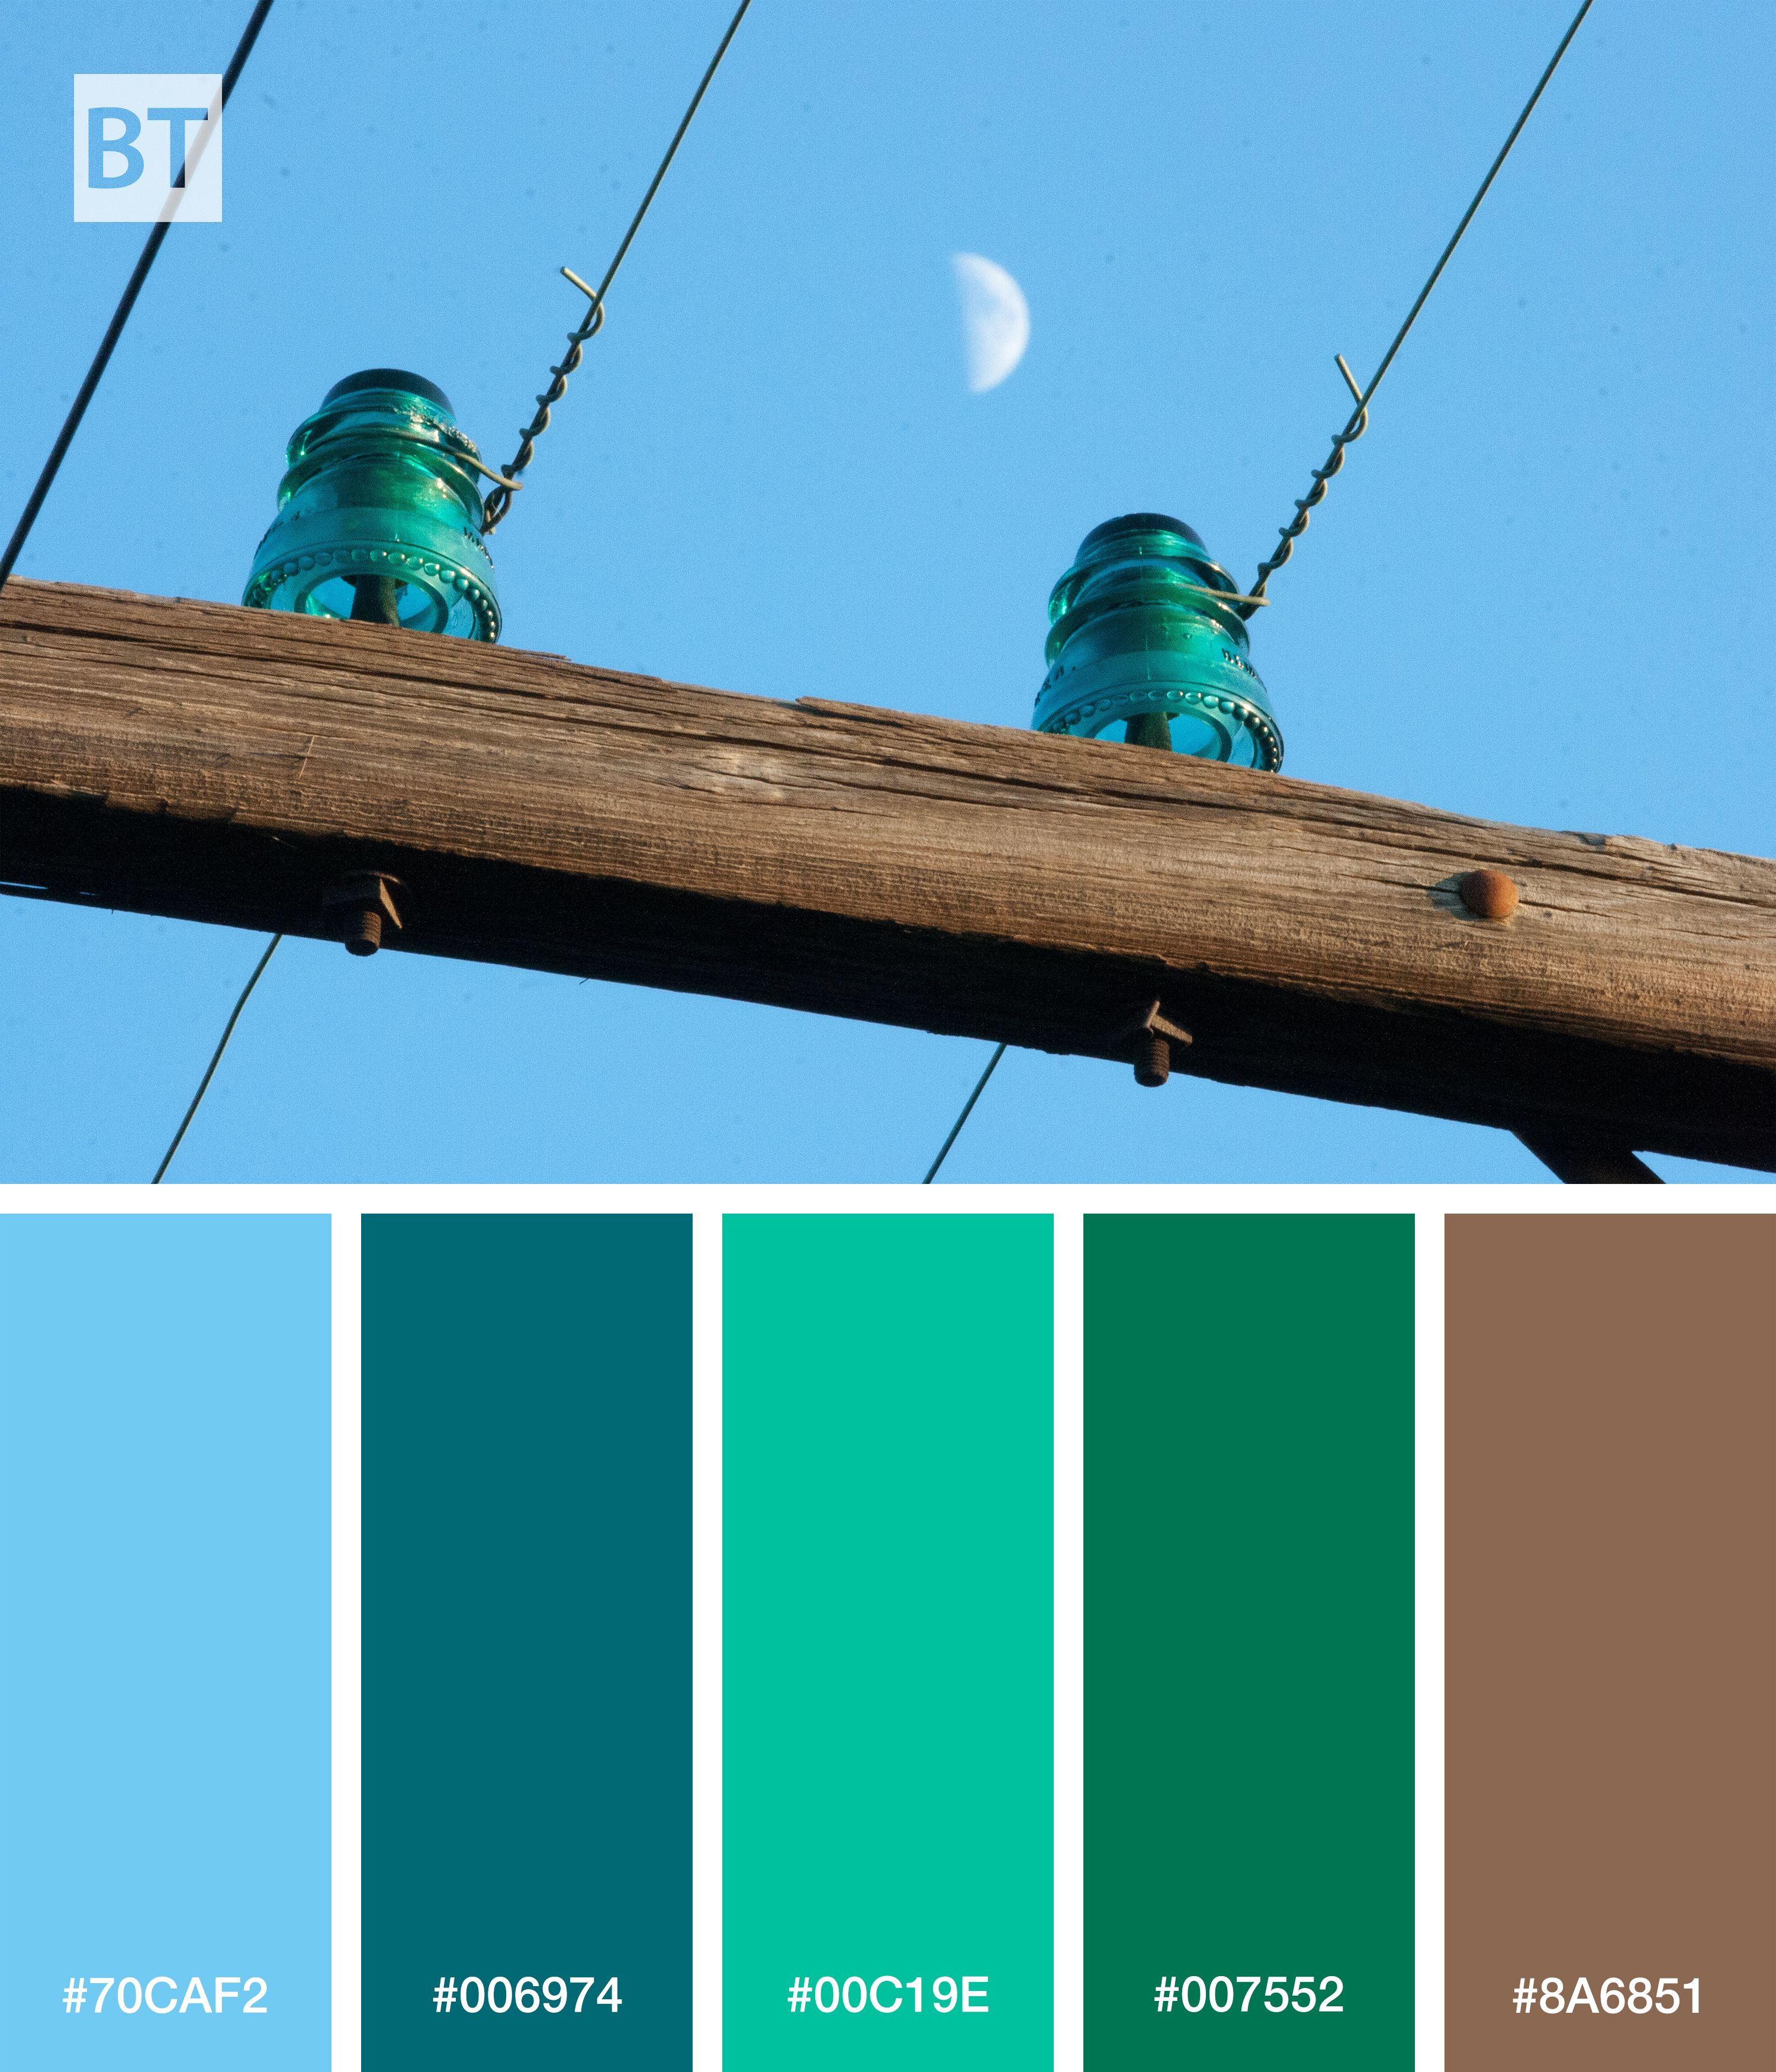 Color palette of old power line glass insulators alongside for Glass power line insulators